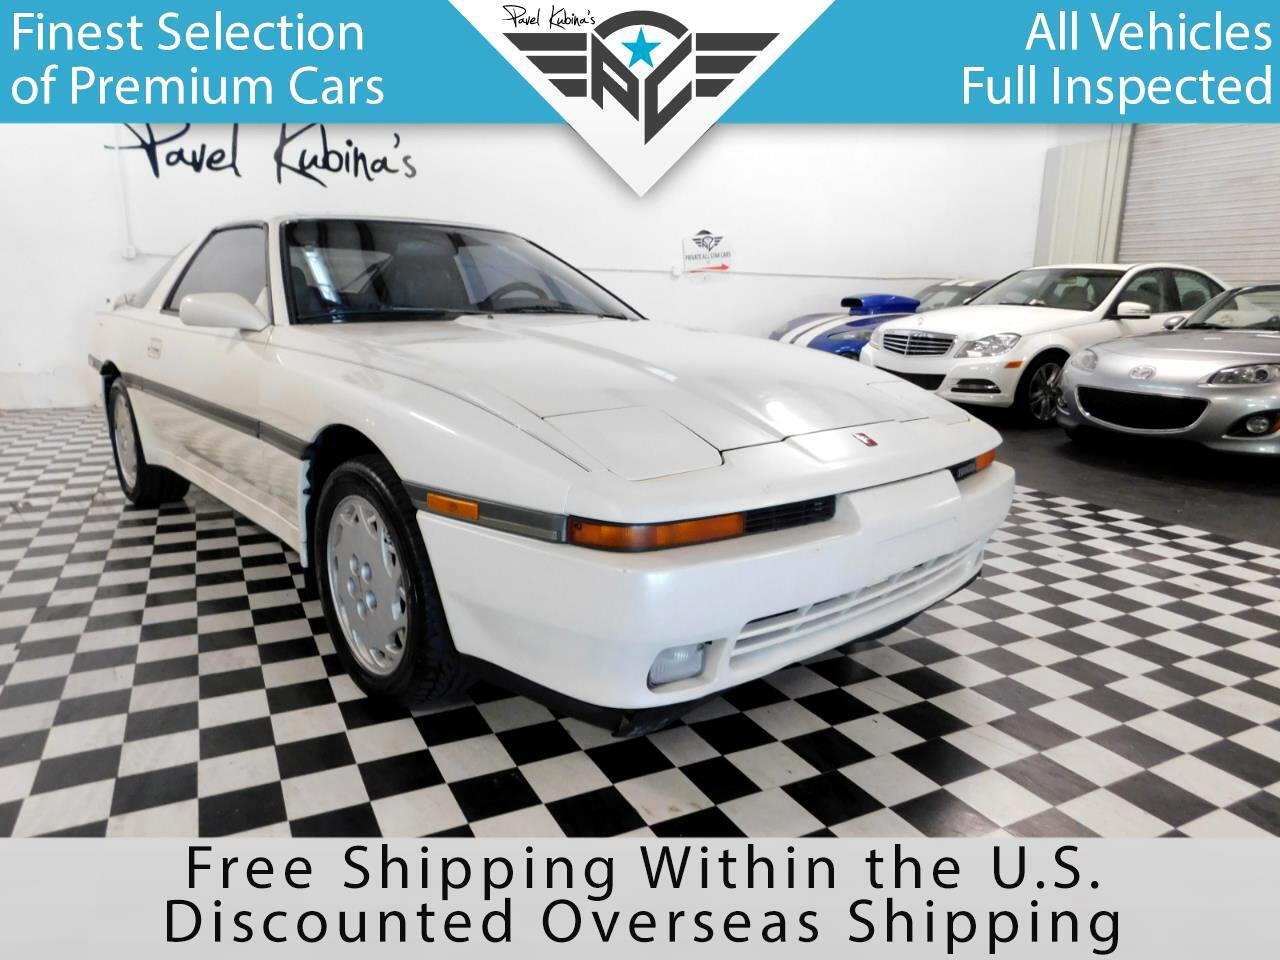 1989 Toyota Supra 3dr Liftback 5-Spd Turbo Sport Roof